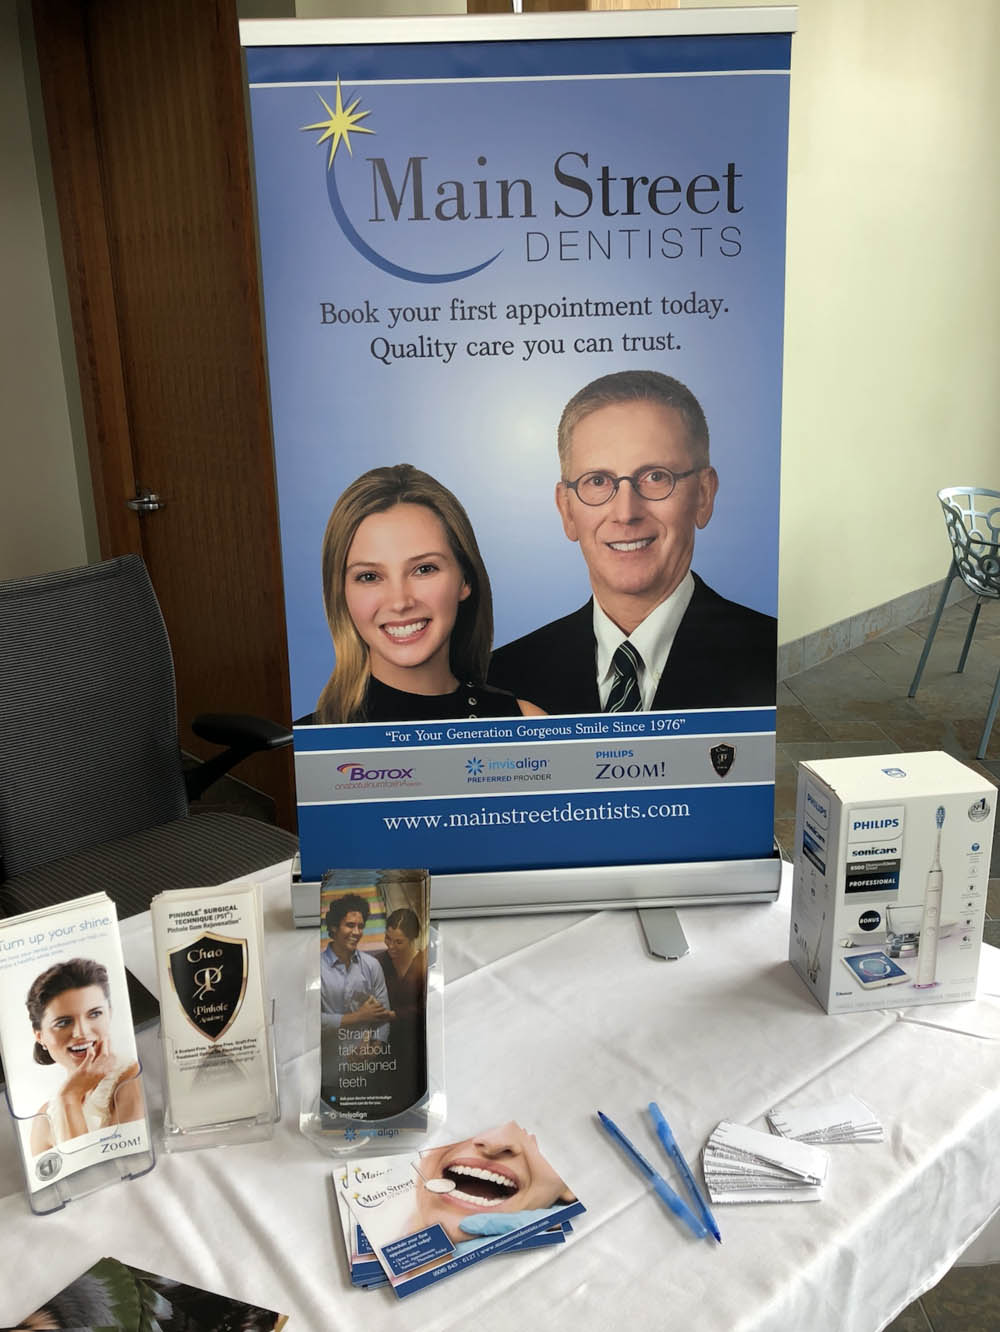 strategy-driven-marketing-main-street-dentists-work-example-print-experts-Chicago.jpg